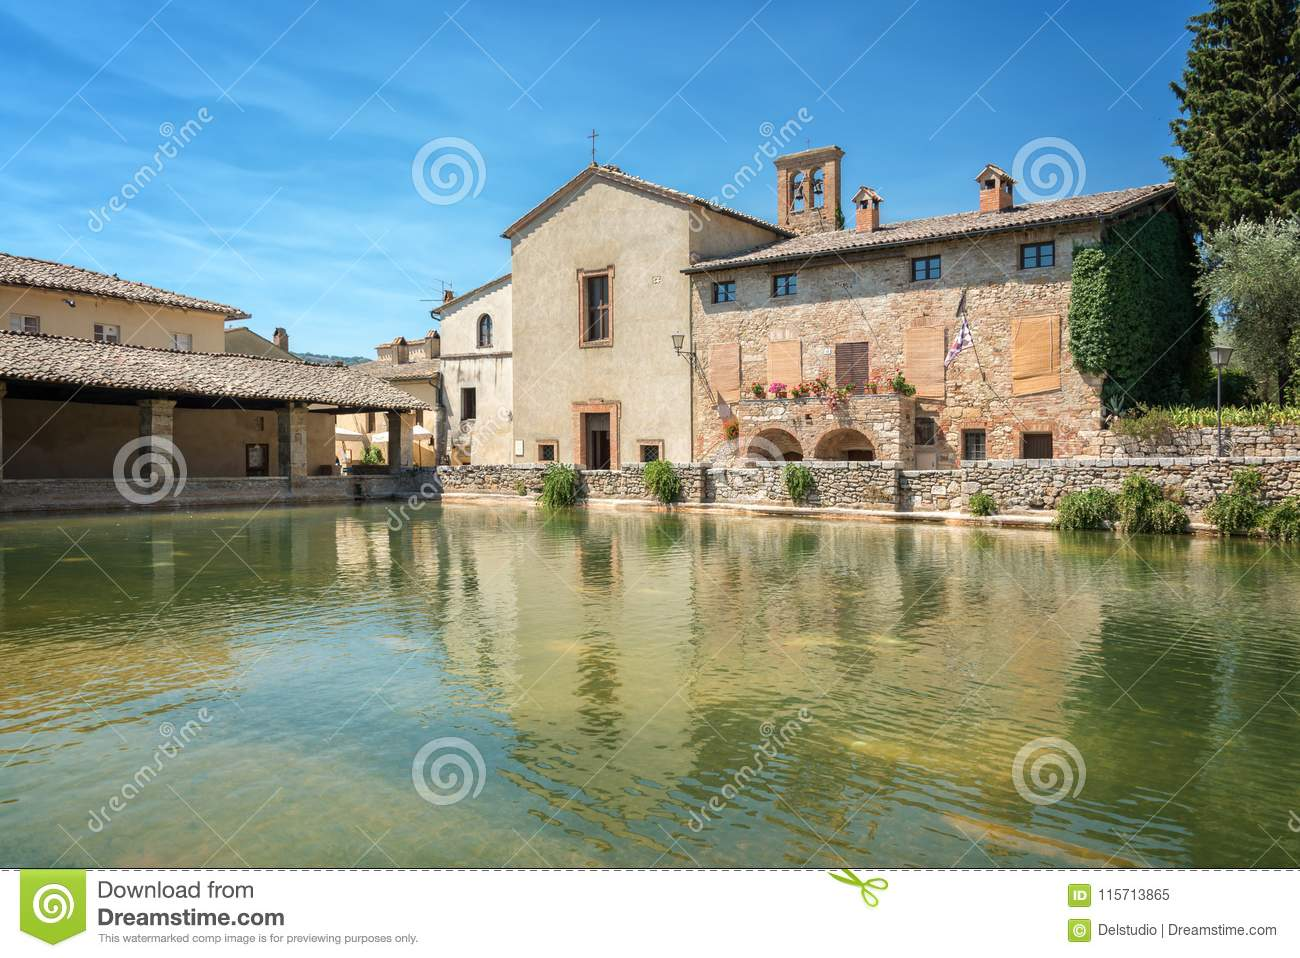 Bagno Vignoni Free Thermal Baths Hot Springs Bath In The Village Of Bagno Vignoni Tuscany Italy